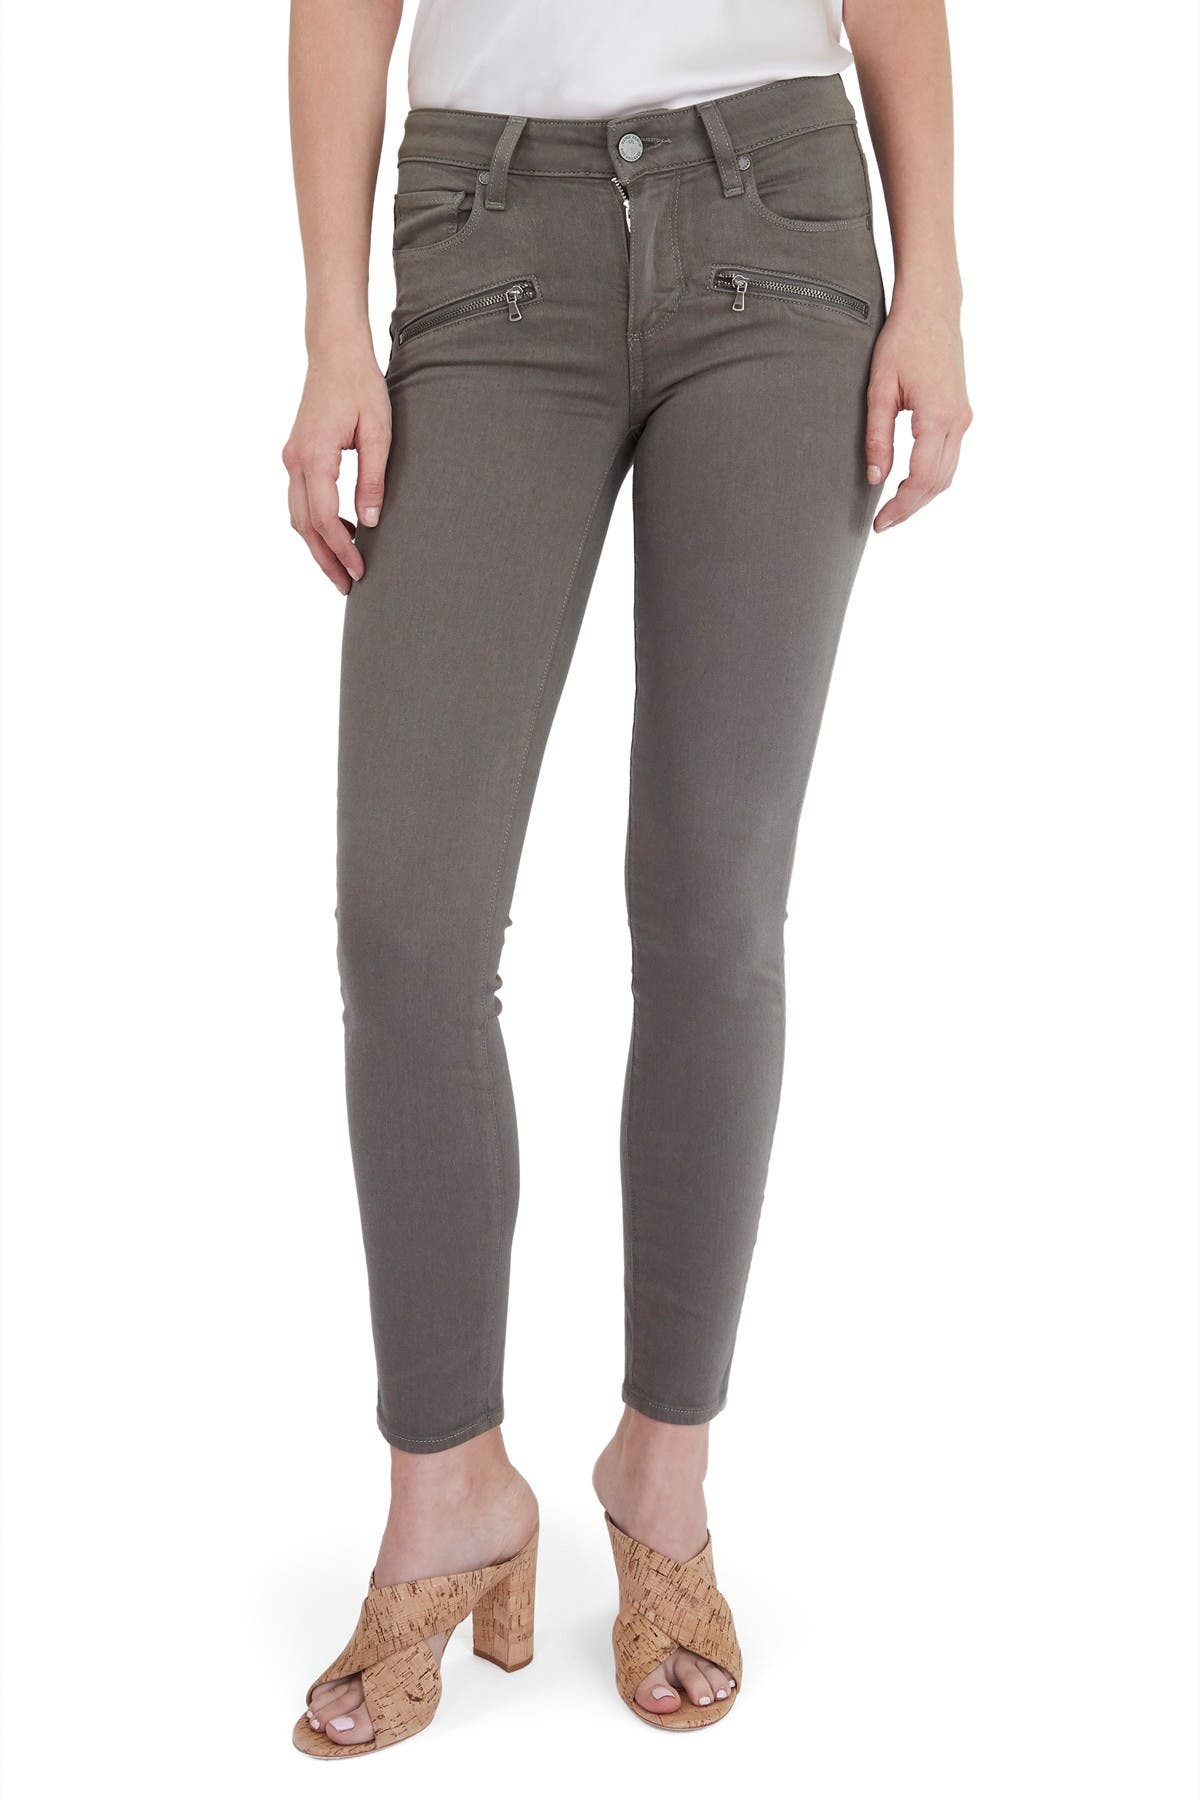 Image of PAIGE Indio Zip Ankle Skinny Jeans